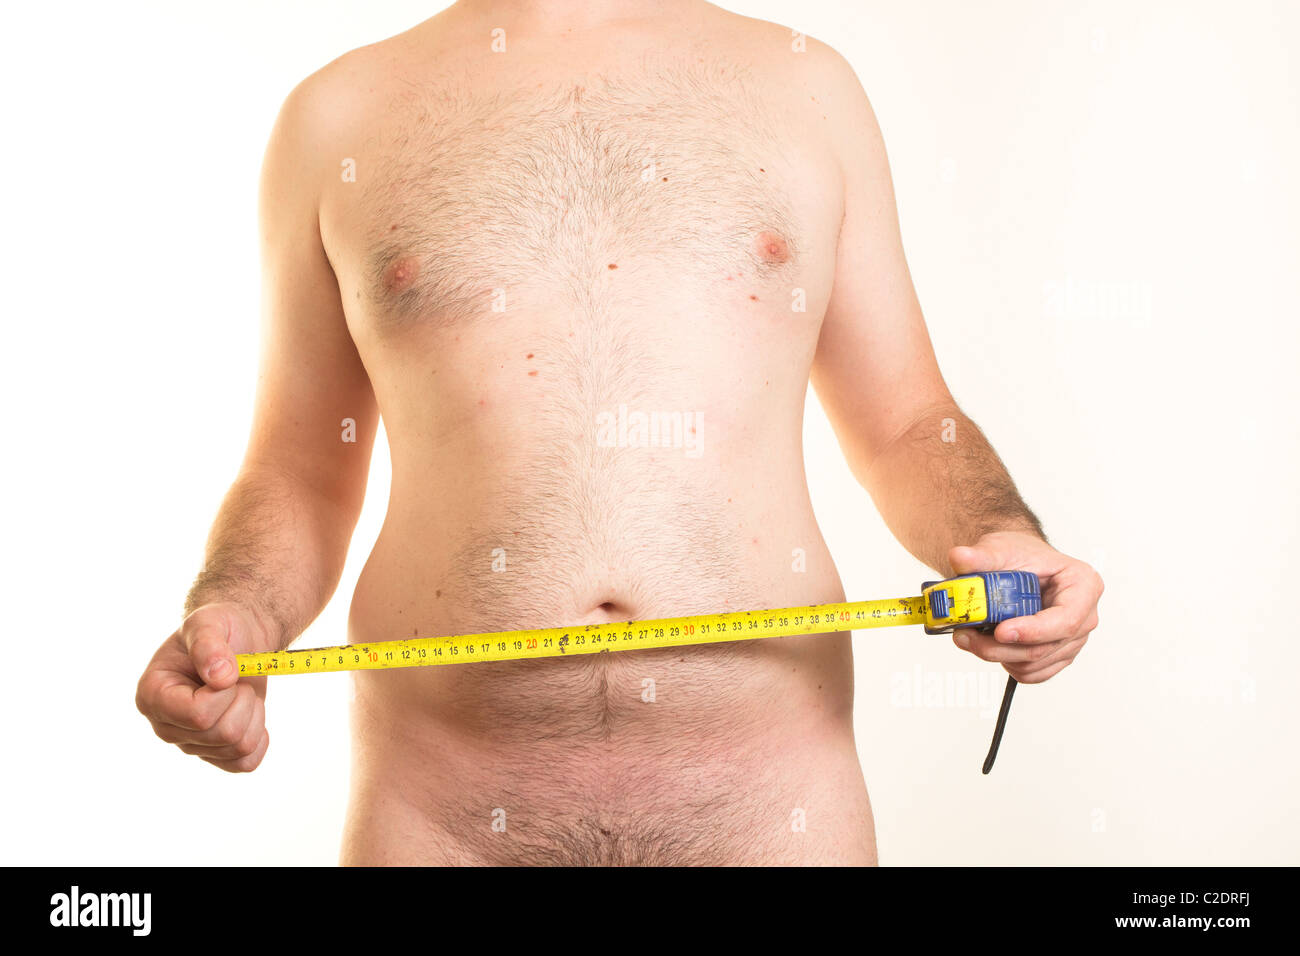 Overweight Man Measuring Belly Stock Photos Overweight Man